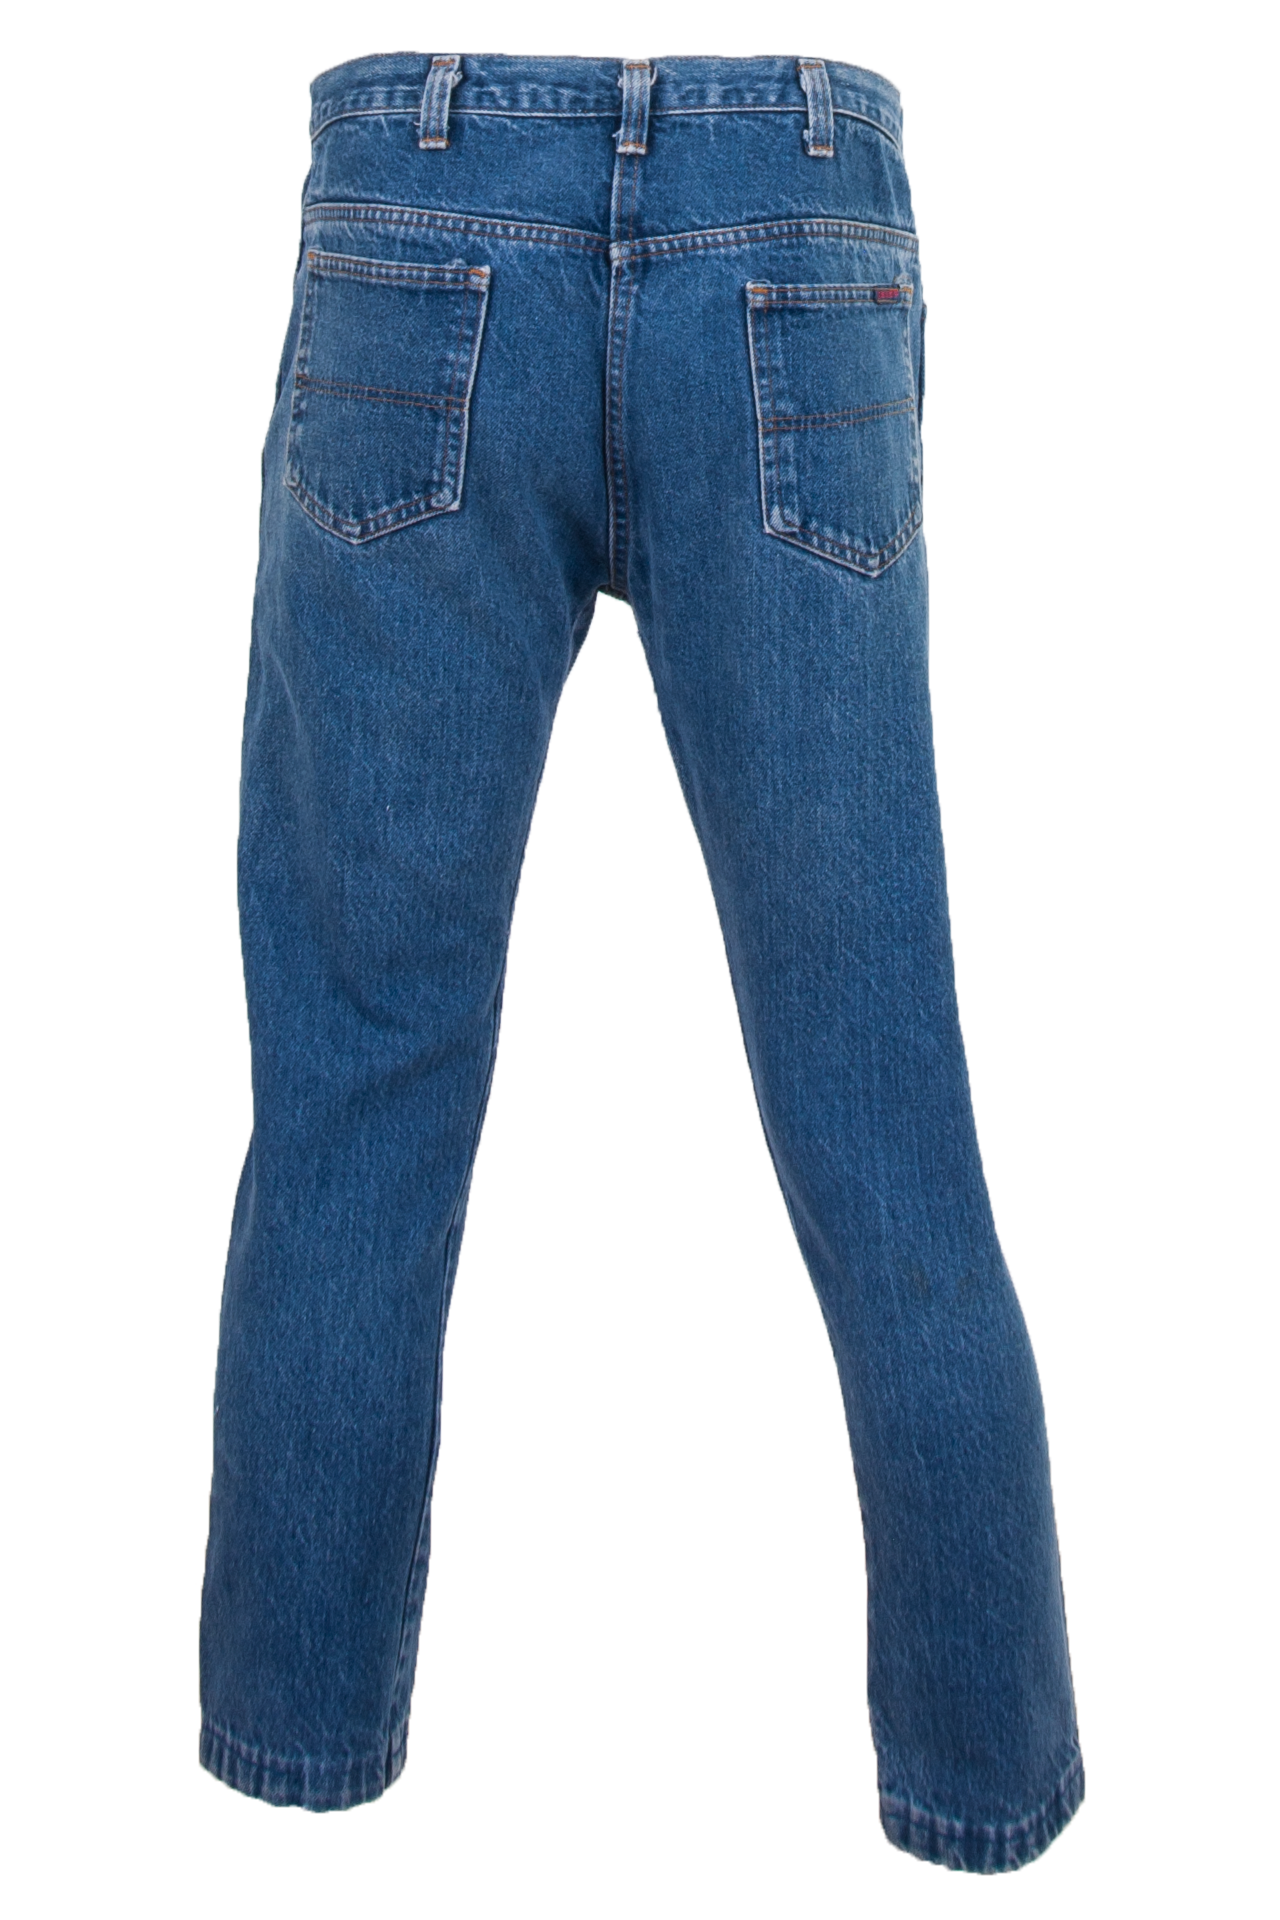 vintage blue jeans with cropped leg